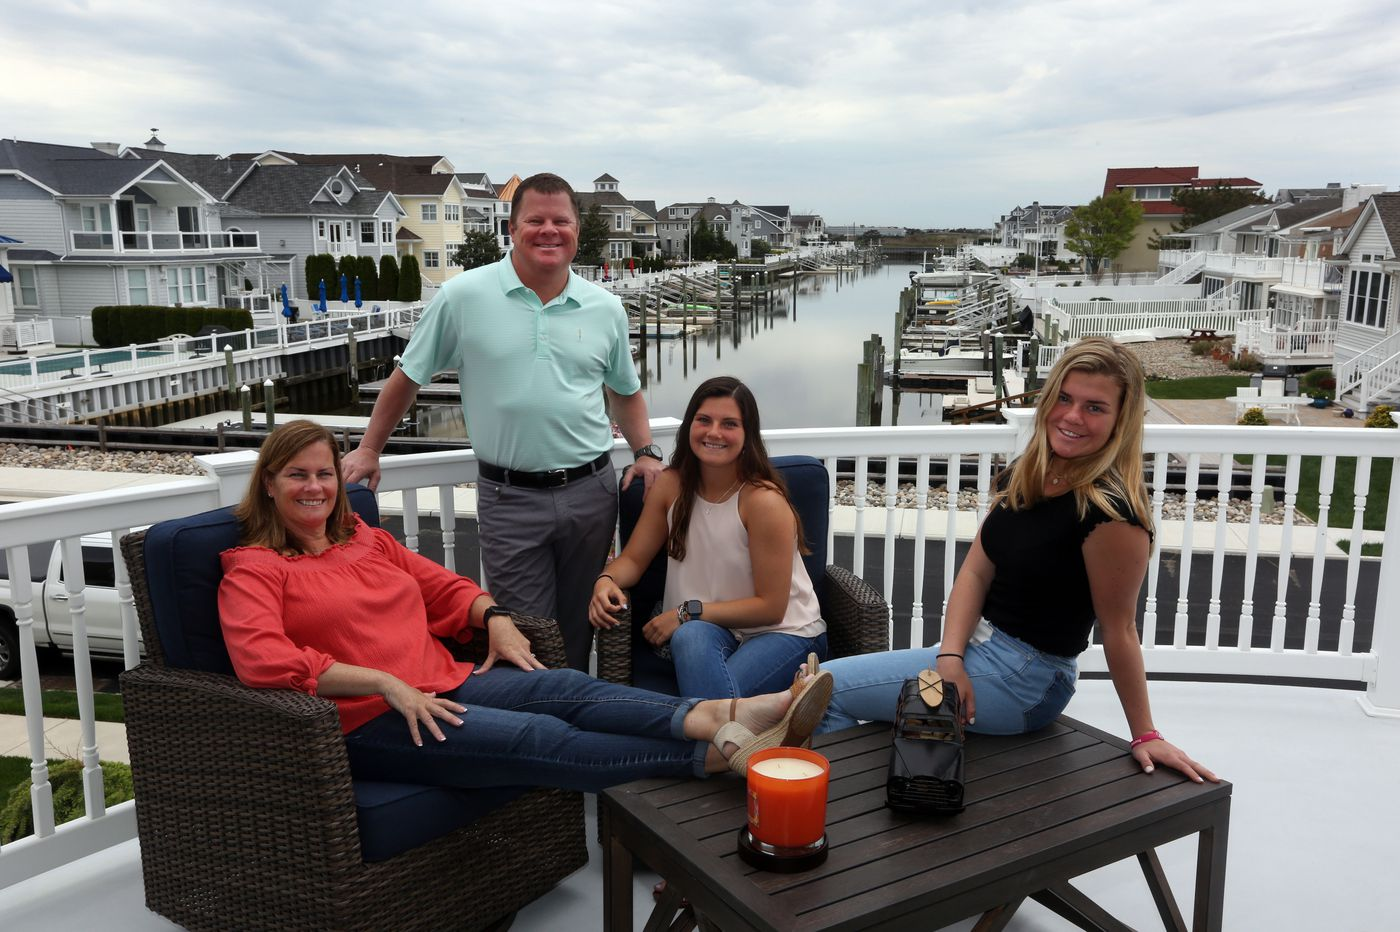 An Ocean City dream home that's 'close to everything'